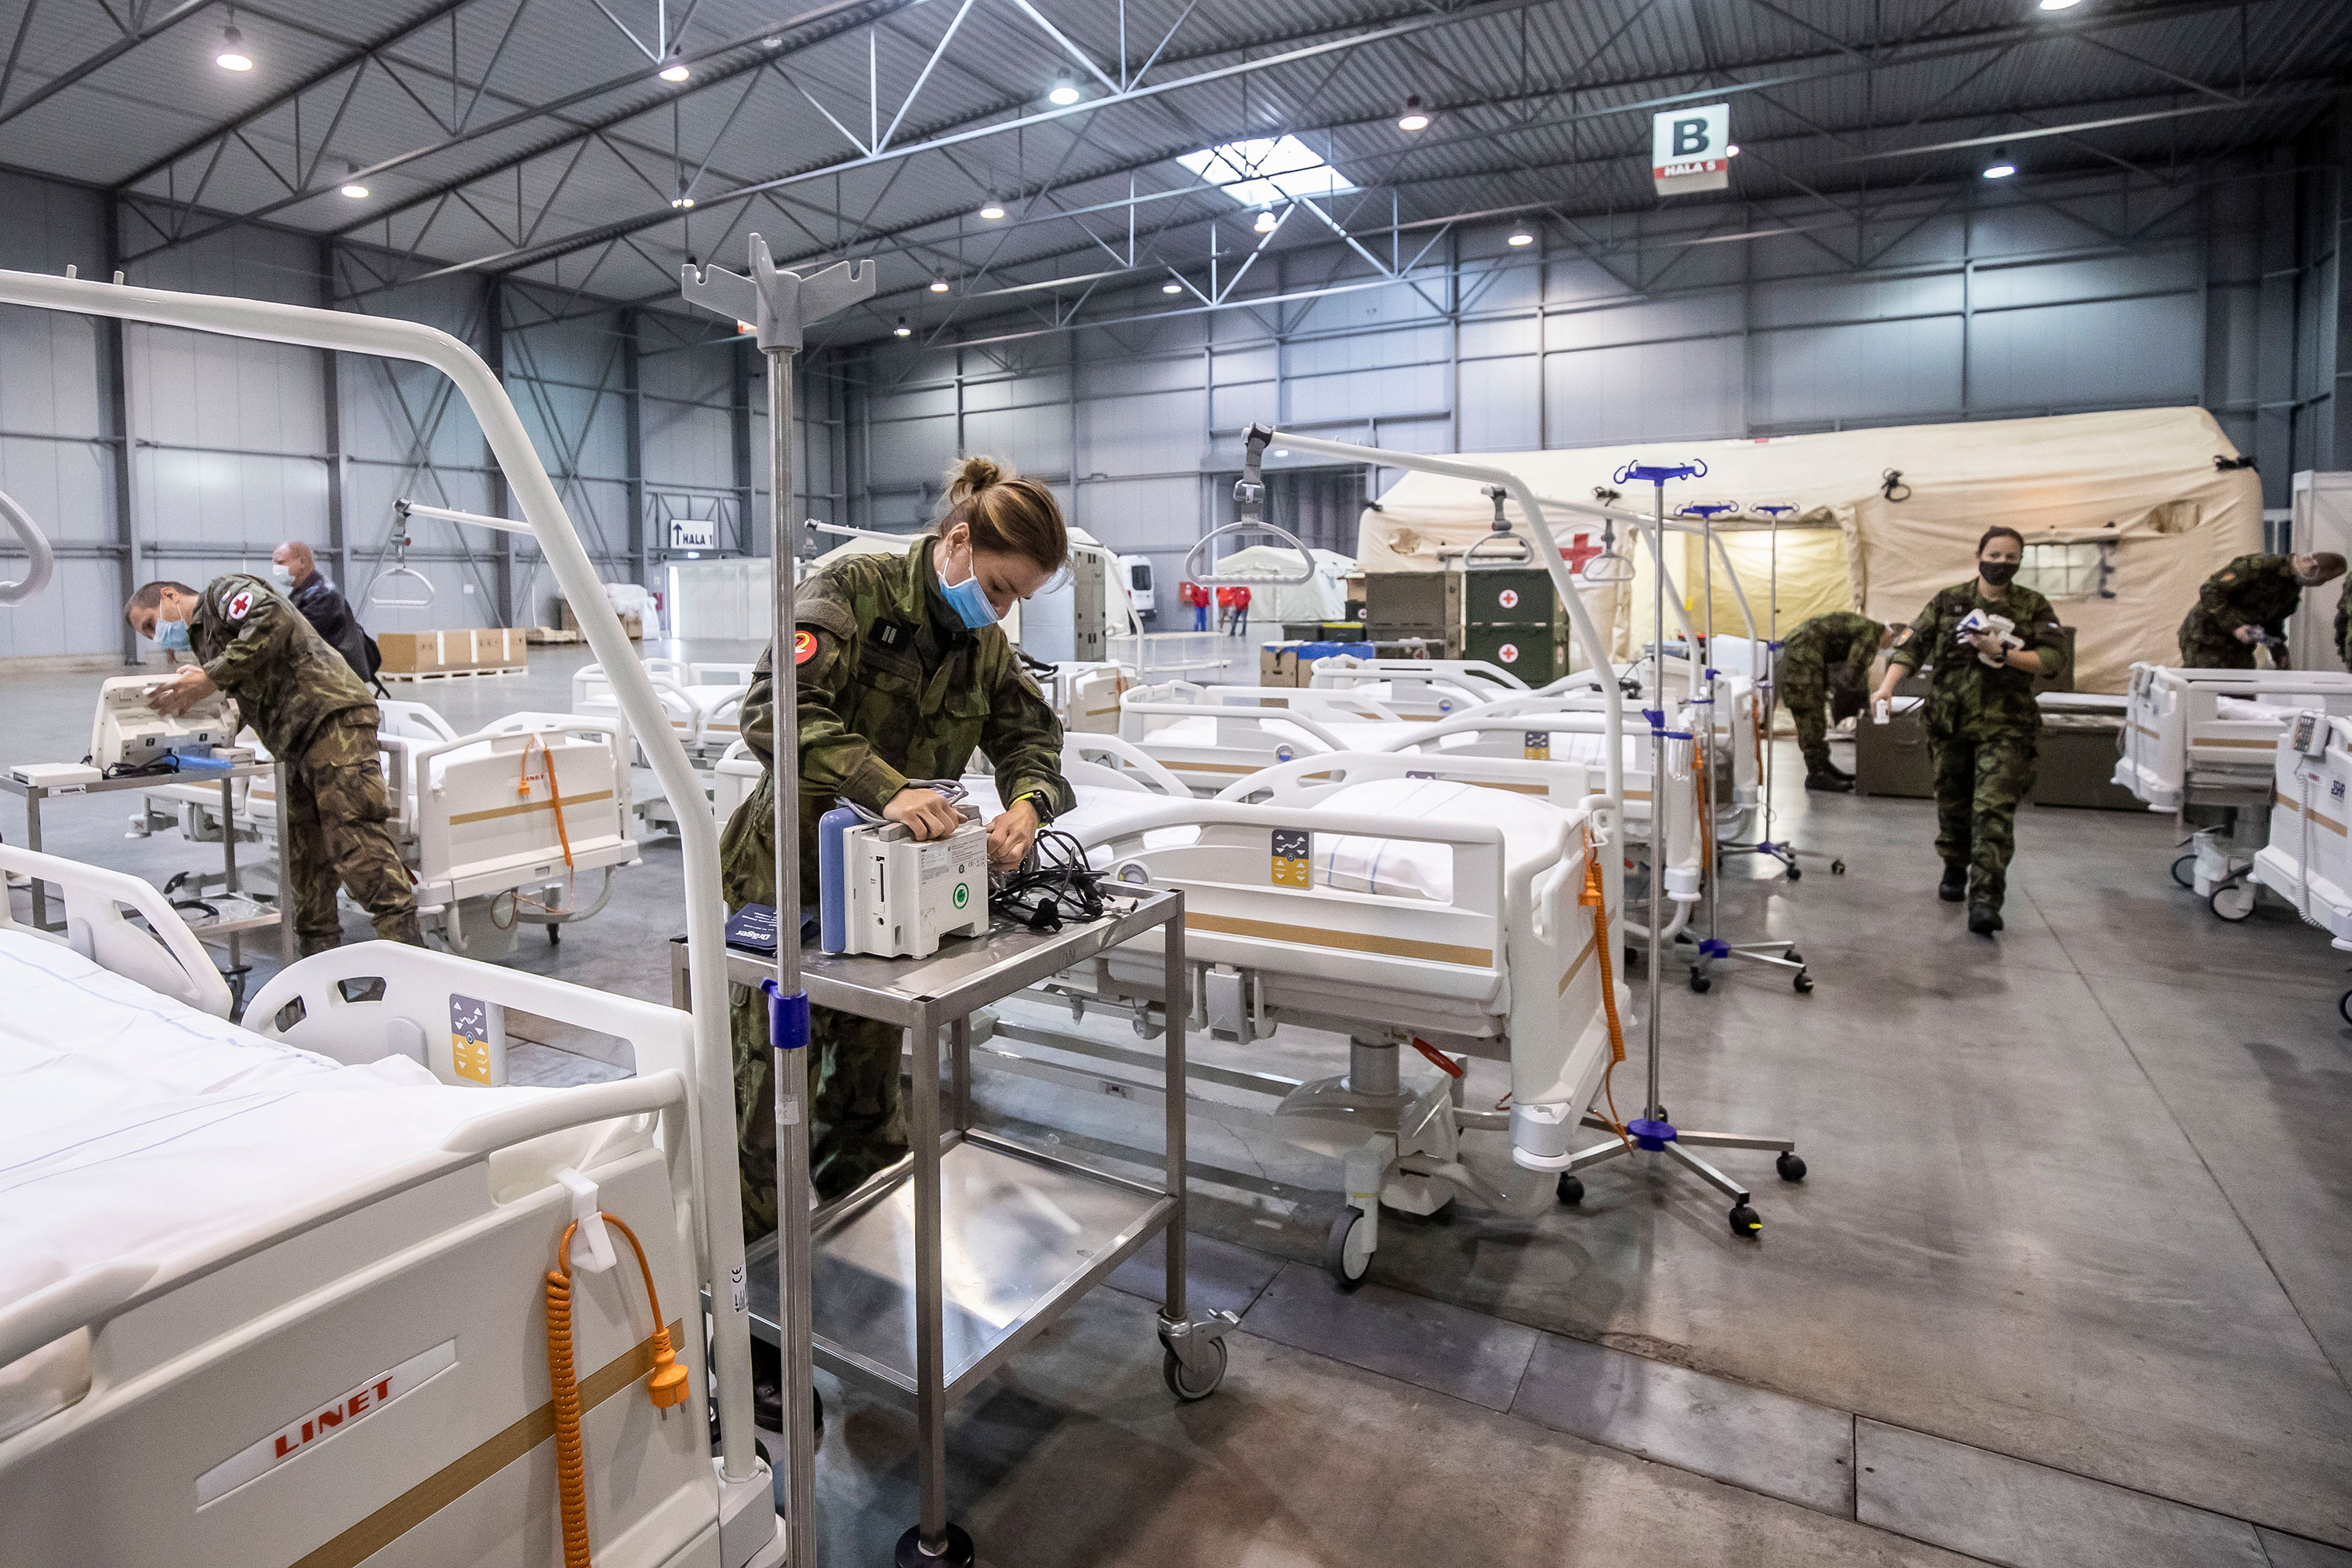 Members of the Czech Army set up equipment and beds inside a field hospital for Covid-19 patients on October 22 in Prague, Czech Republic.